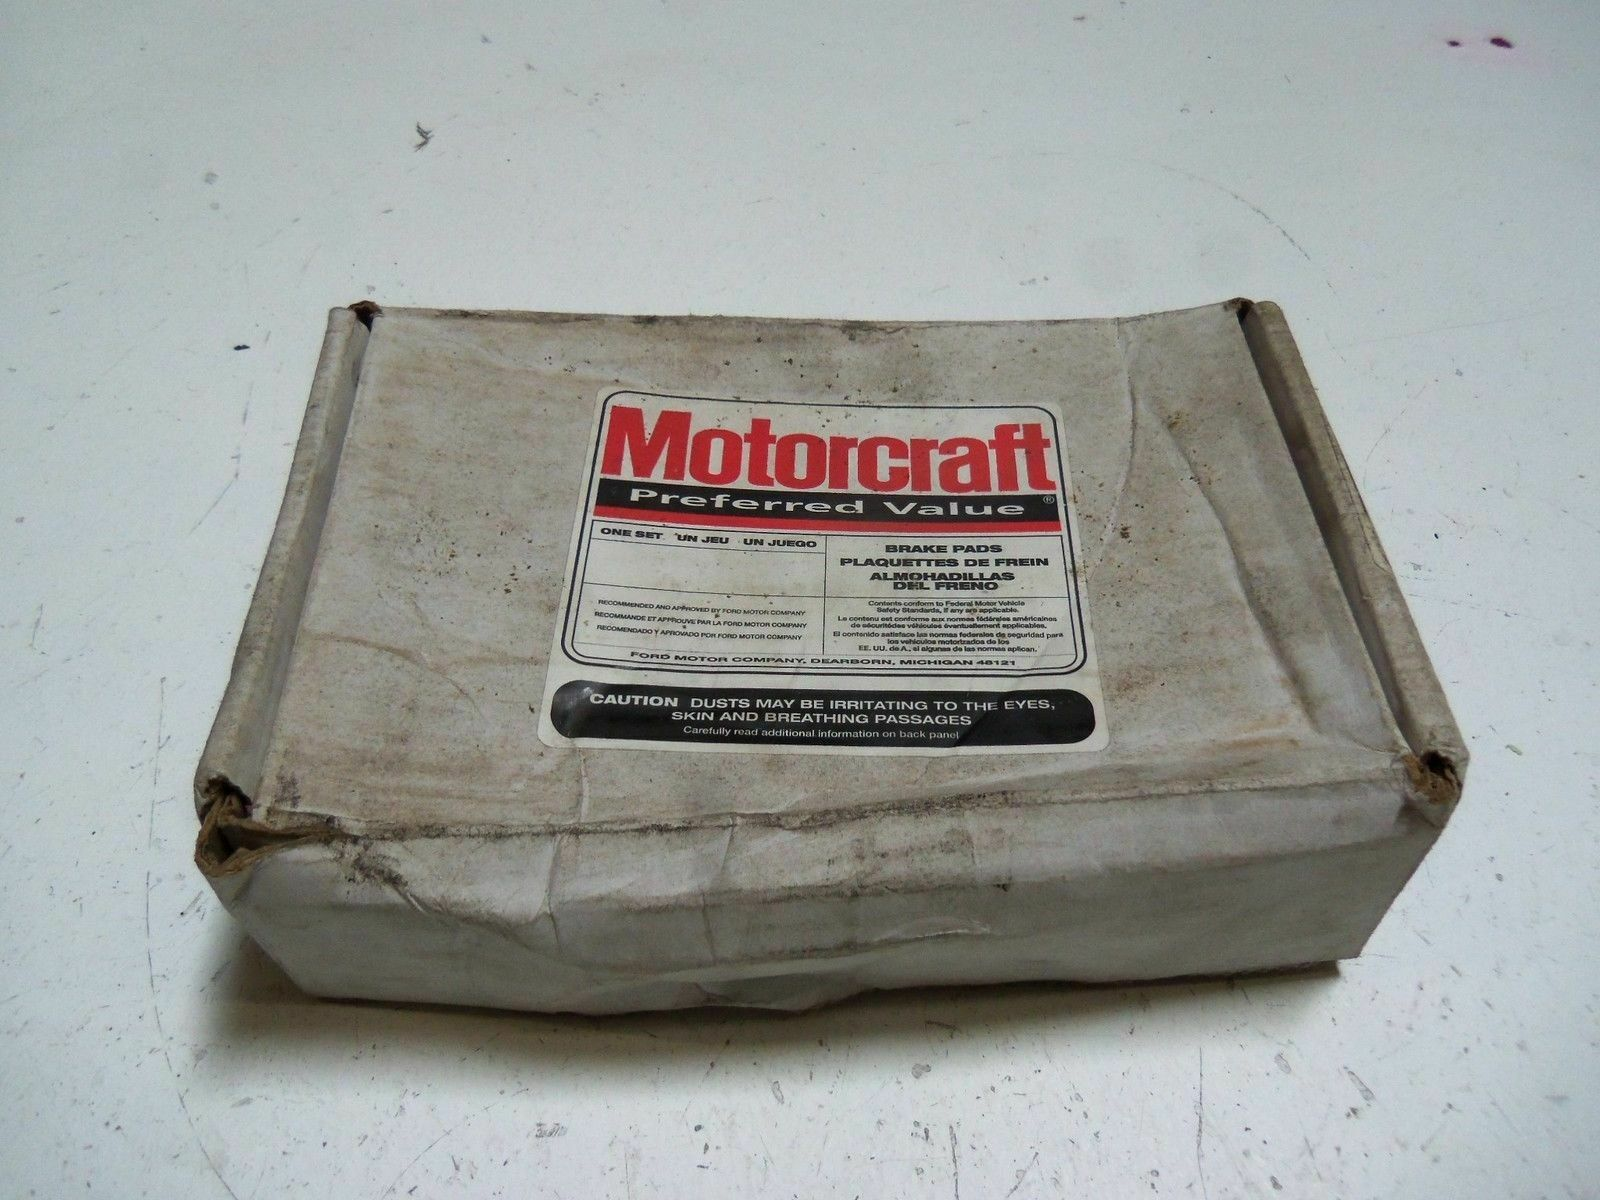 LOT OF 4 MOTORCRAFT BR24A BRAKE PADS NEW IN BOX